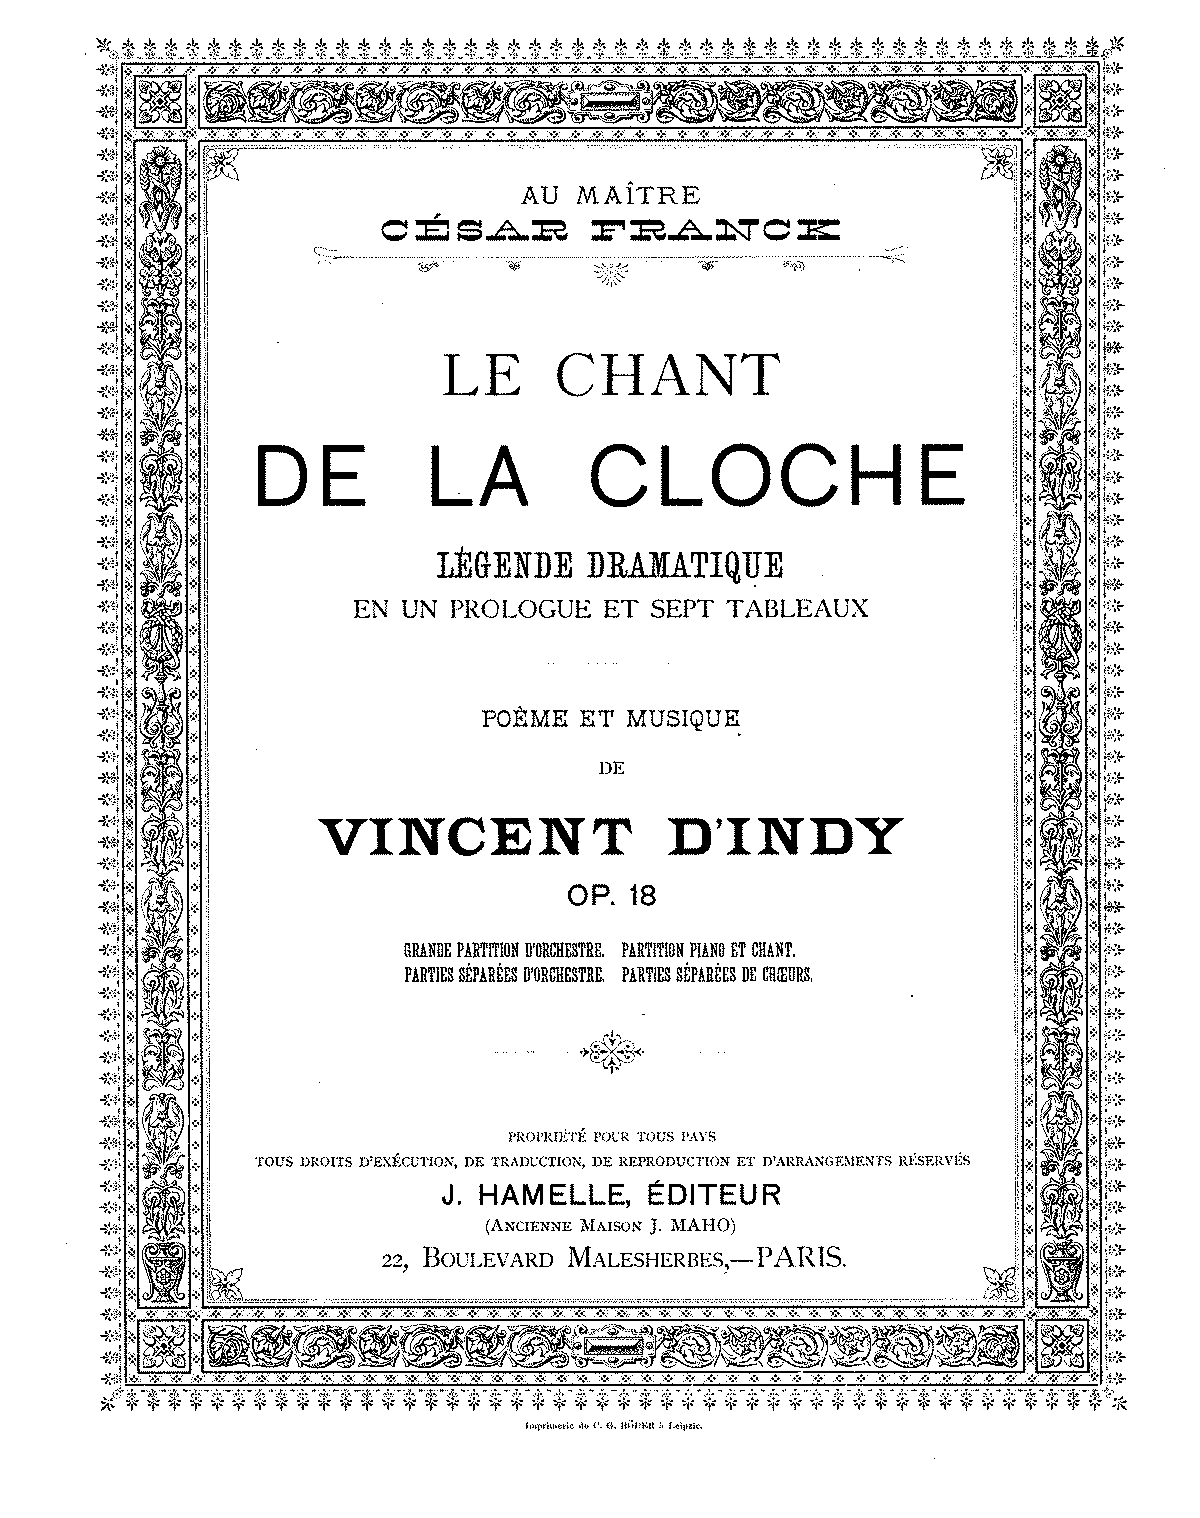 PMLP51849-D'Indy - Le Chant de la Cloche - 0 - Cover - Contents - Note pour l'Execution - Prologue.pdf